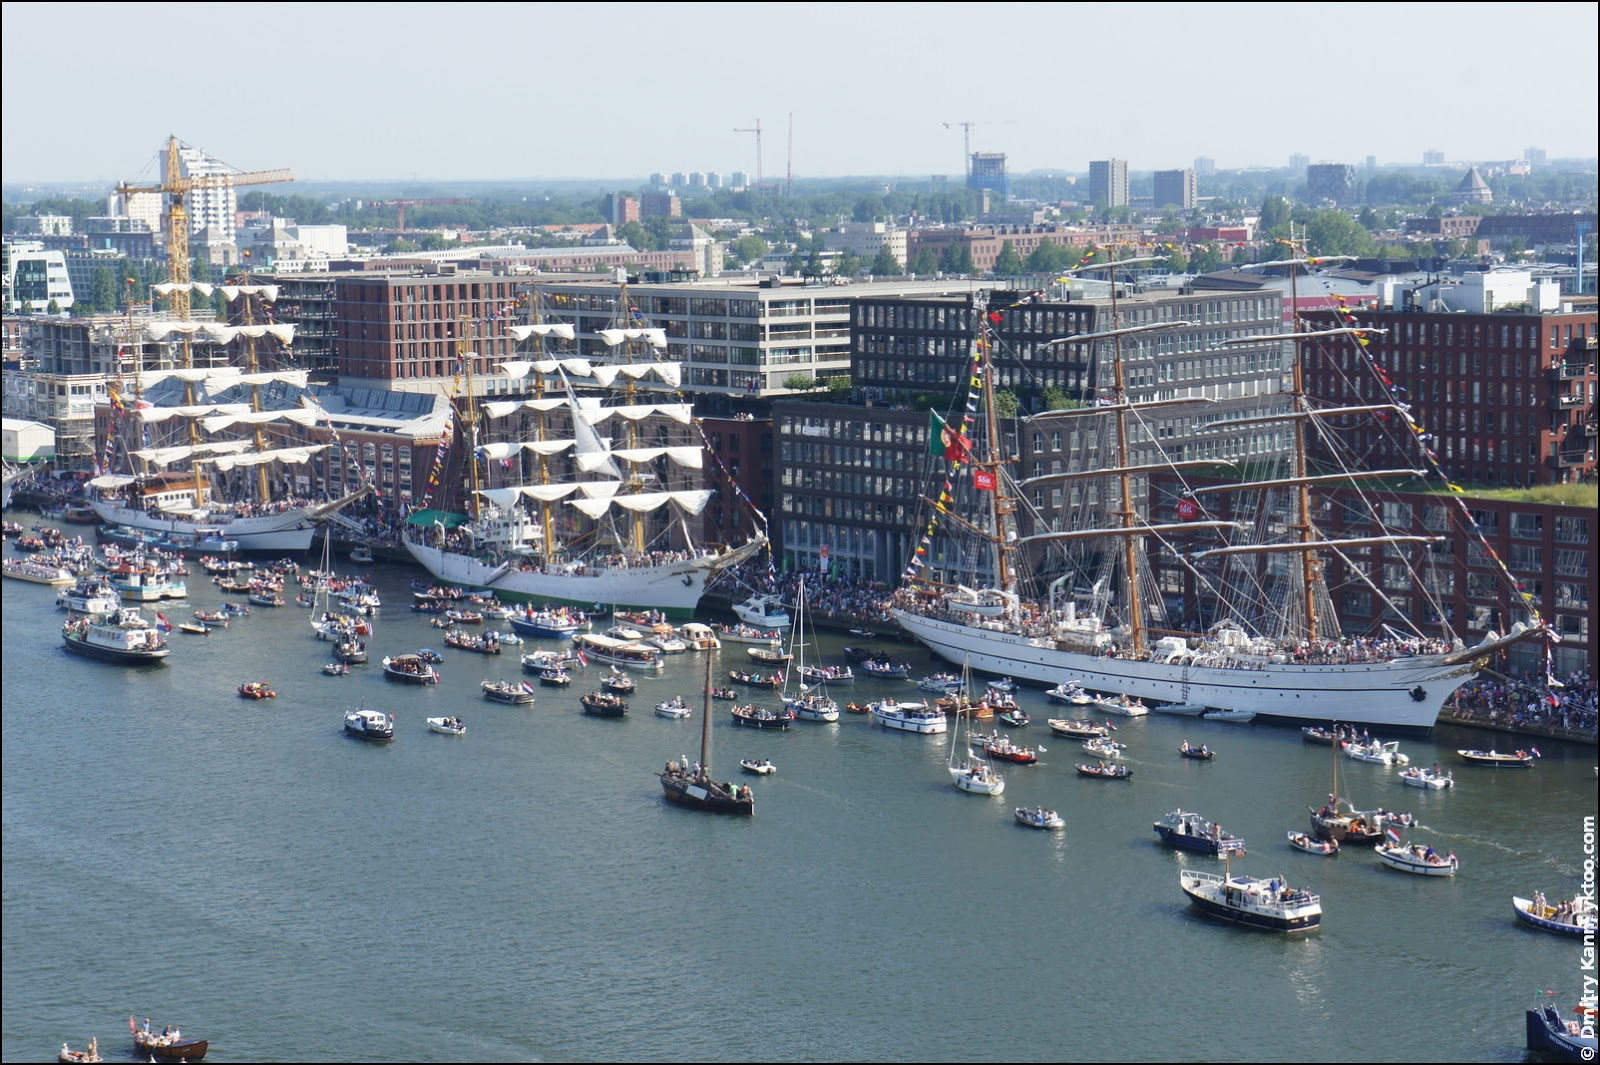 Tall ships at the Veemkade.